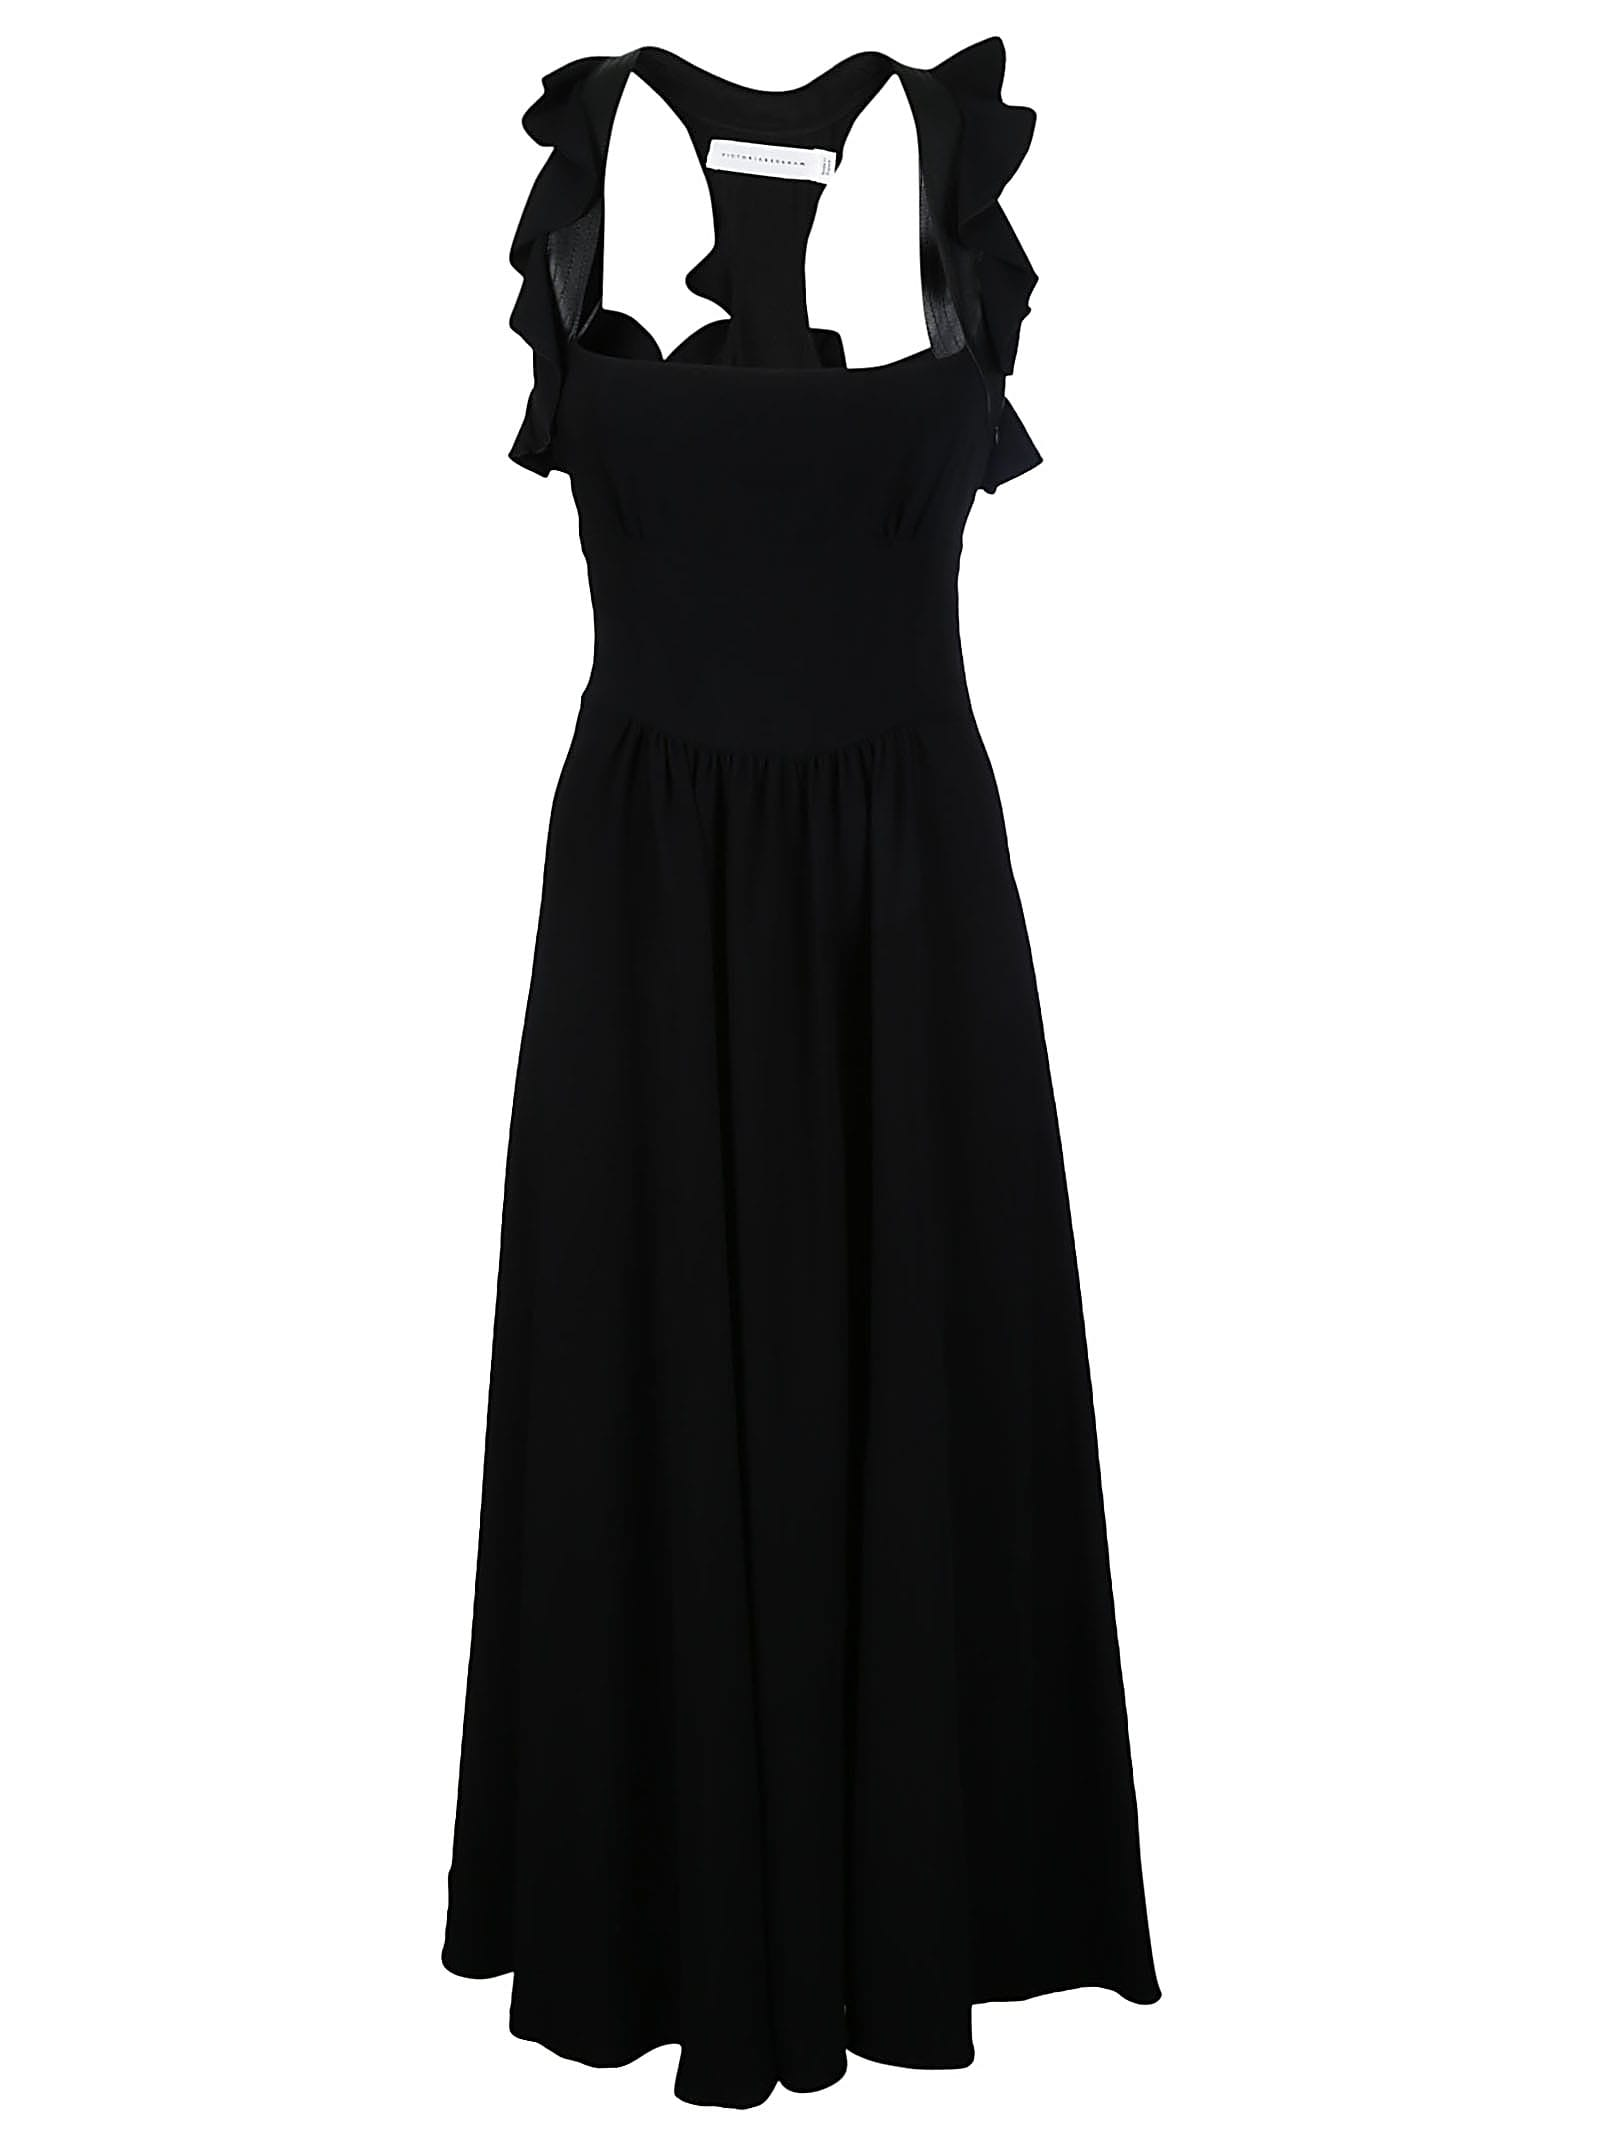 Victoria Beckham Long Ruffle Dress